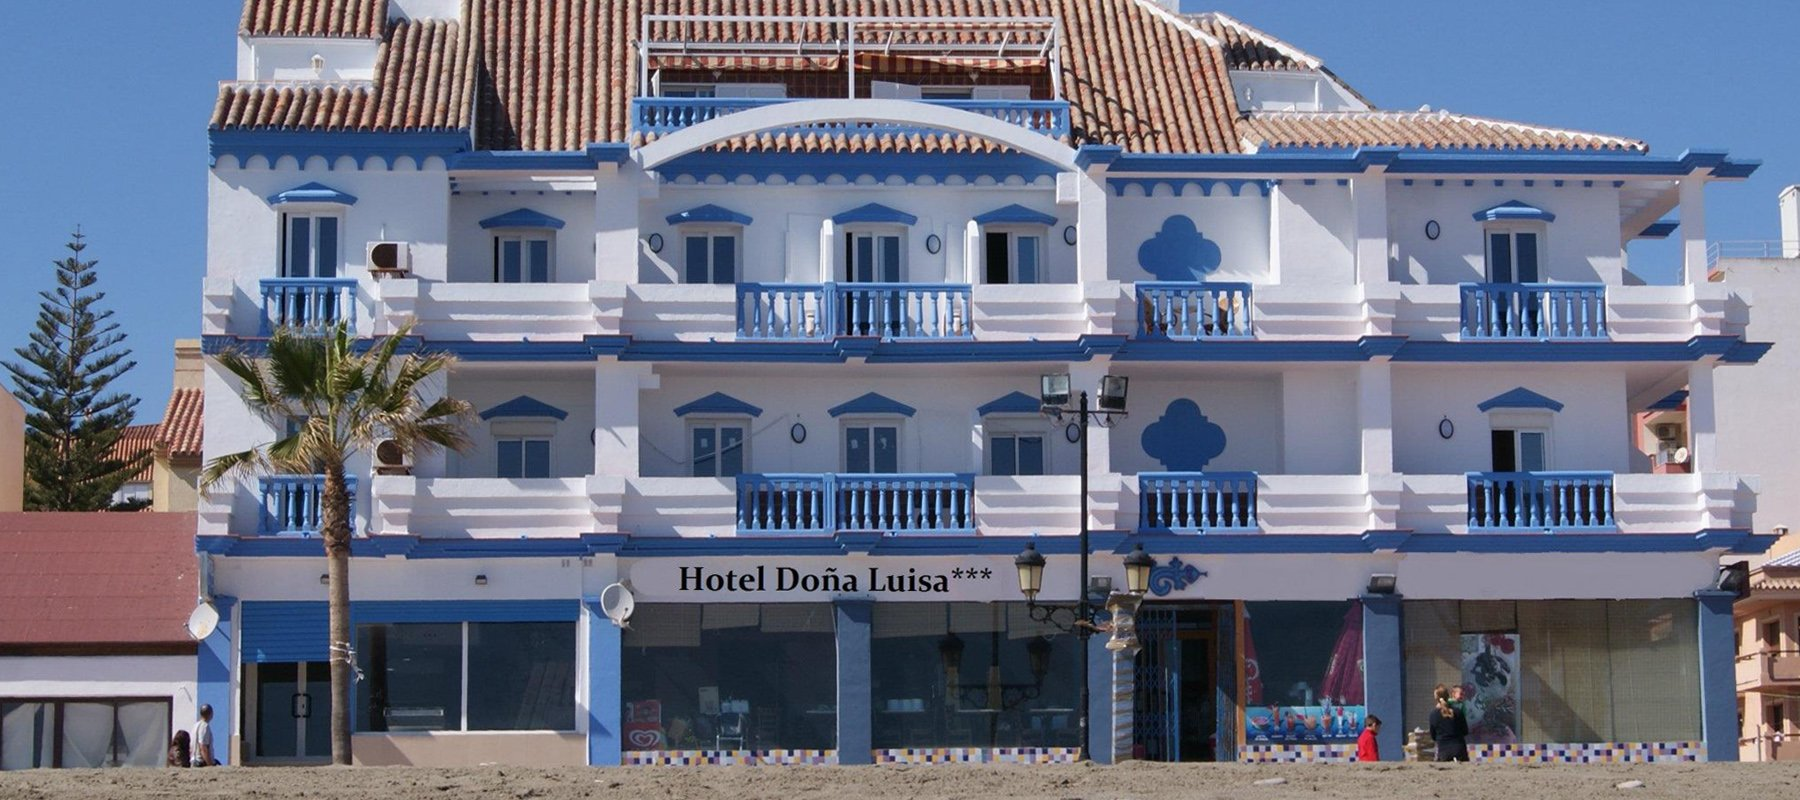 Welcome to Hotel Doña Luisa !!